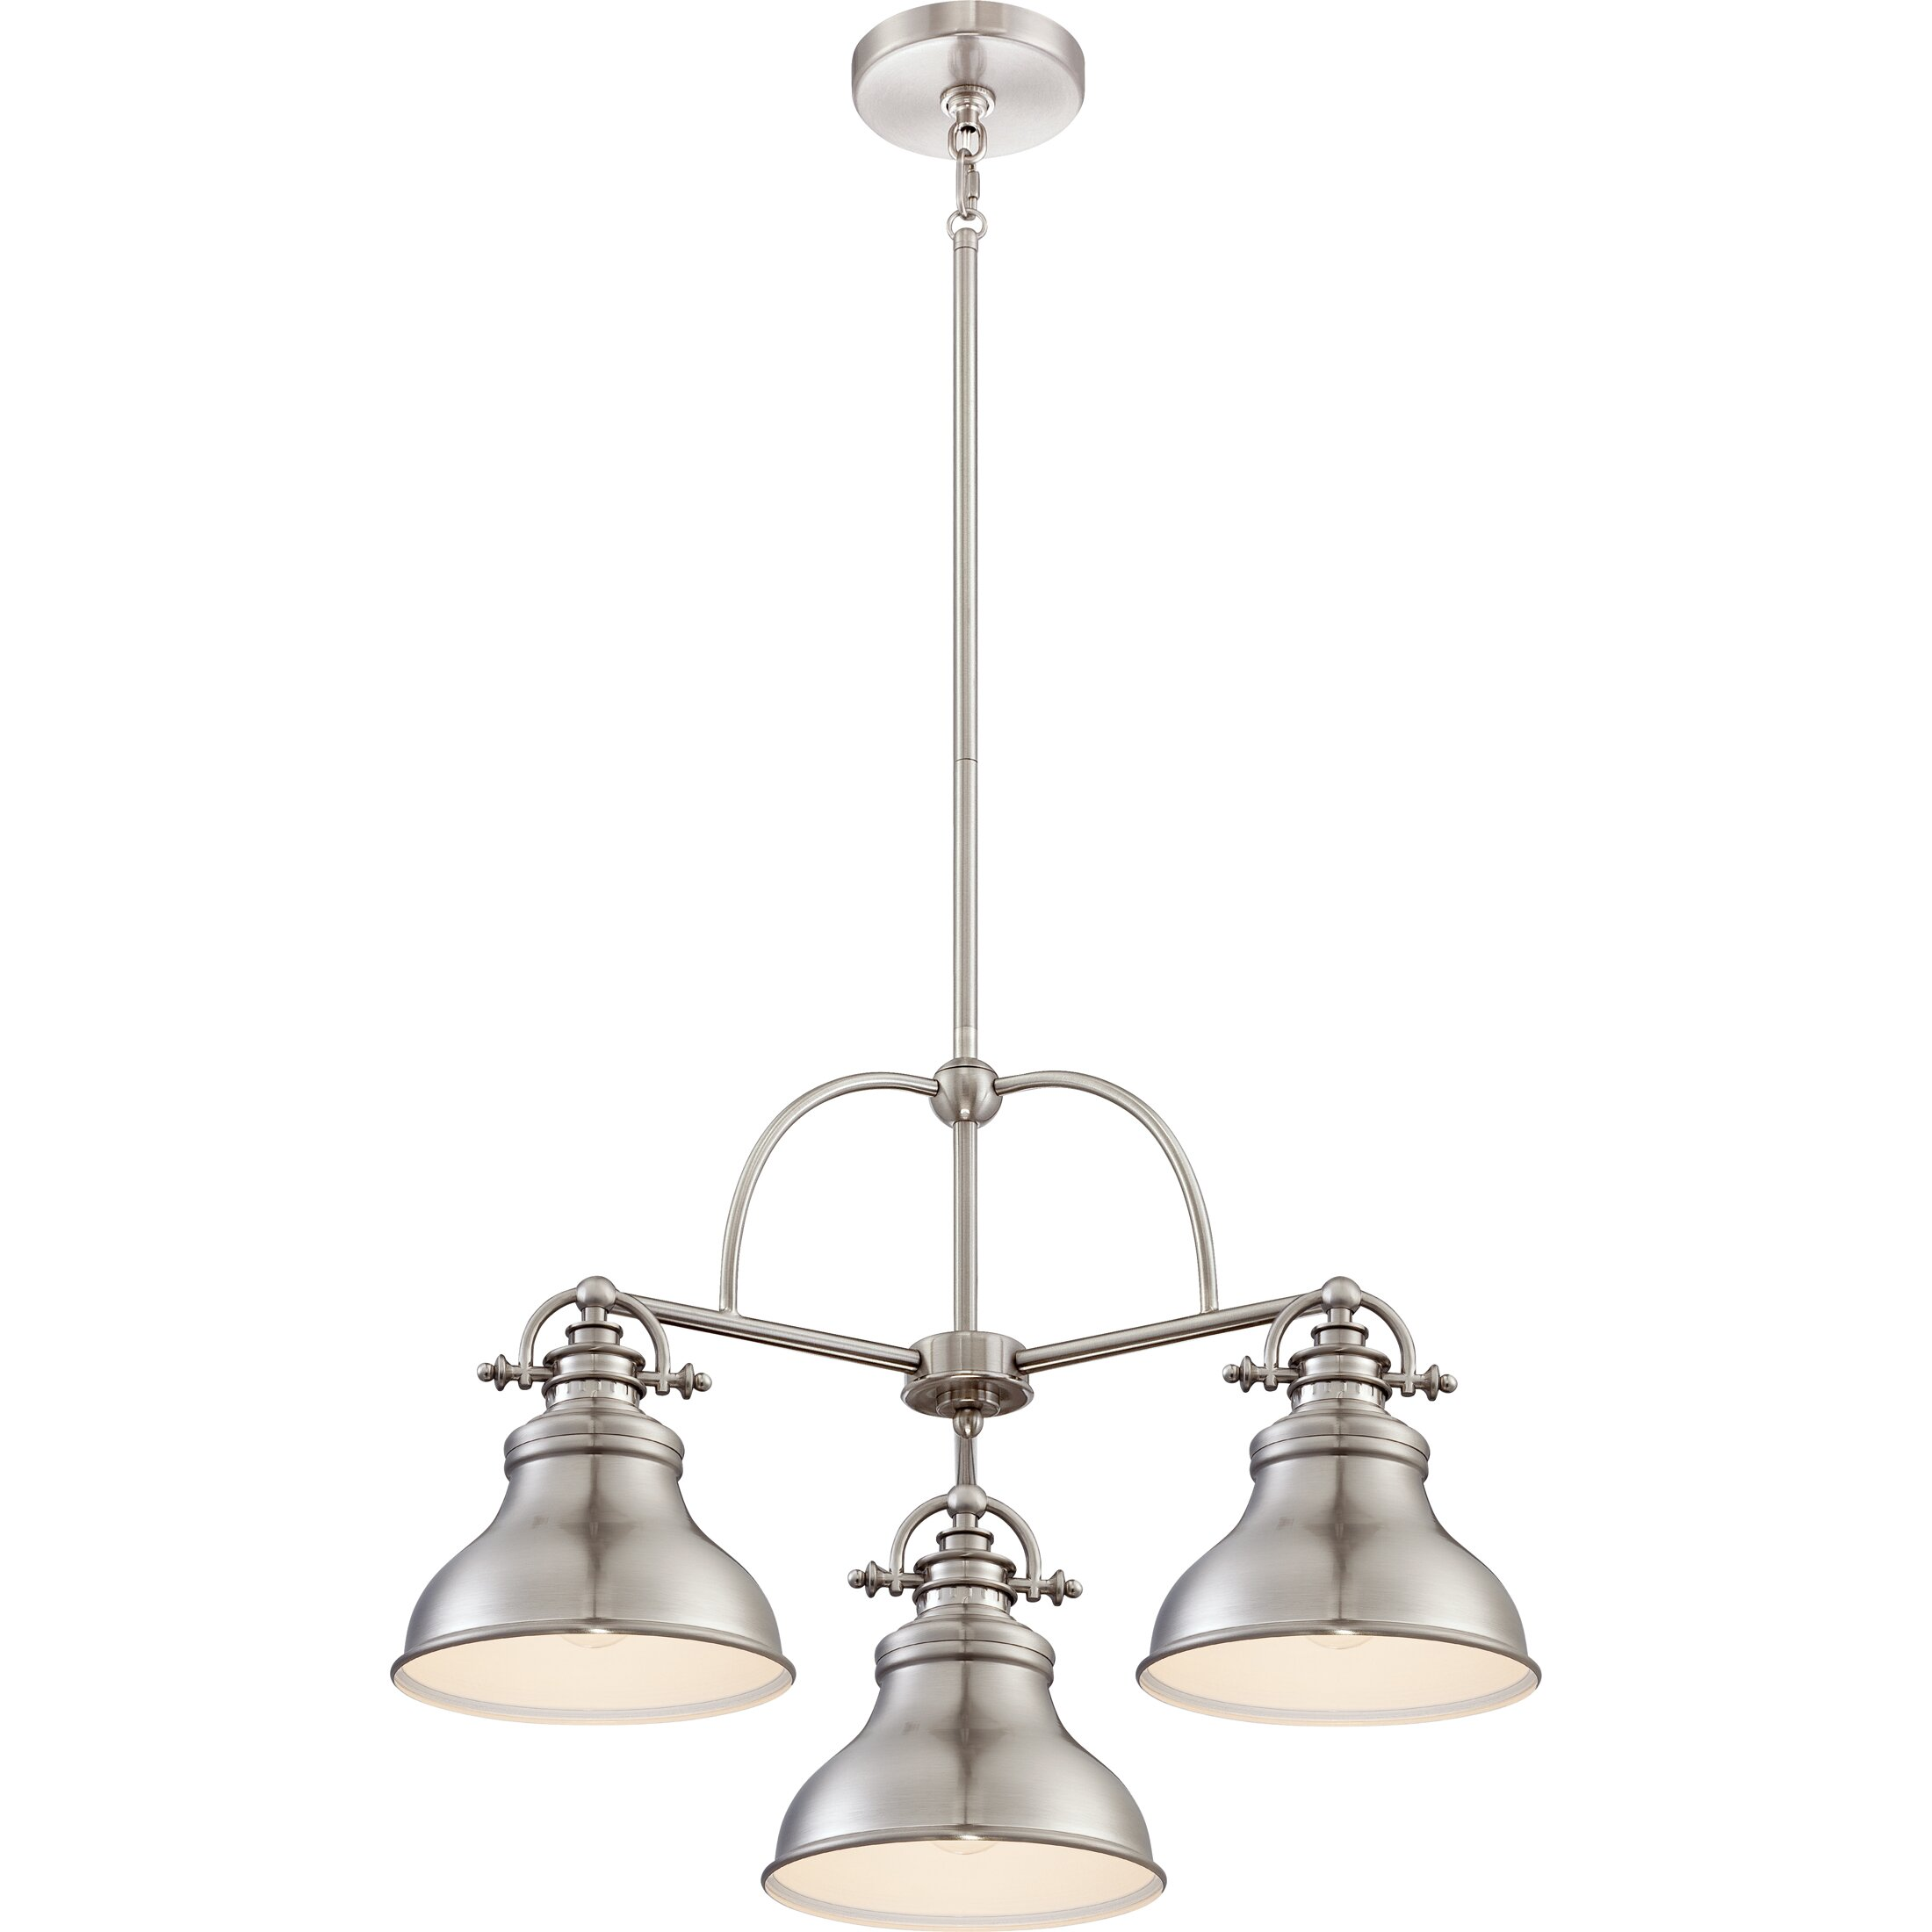 3 Light Kitchen Island Pendant Trent Austin Design Cetona 3 Light Kitchen Island Pendant